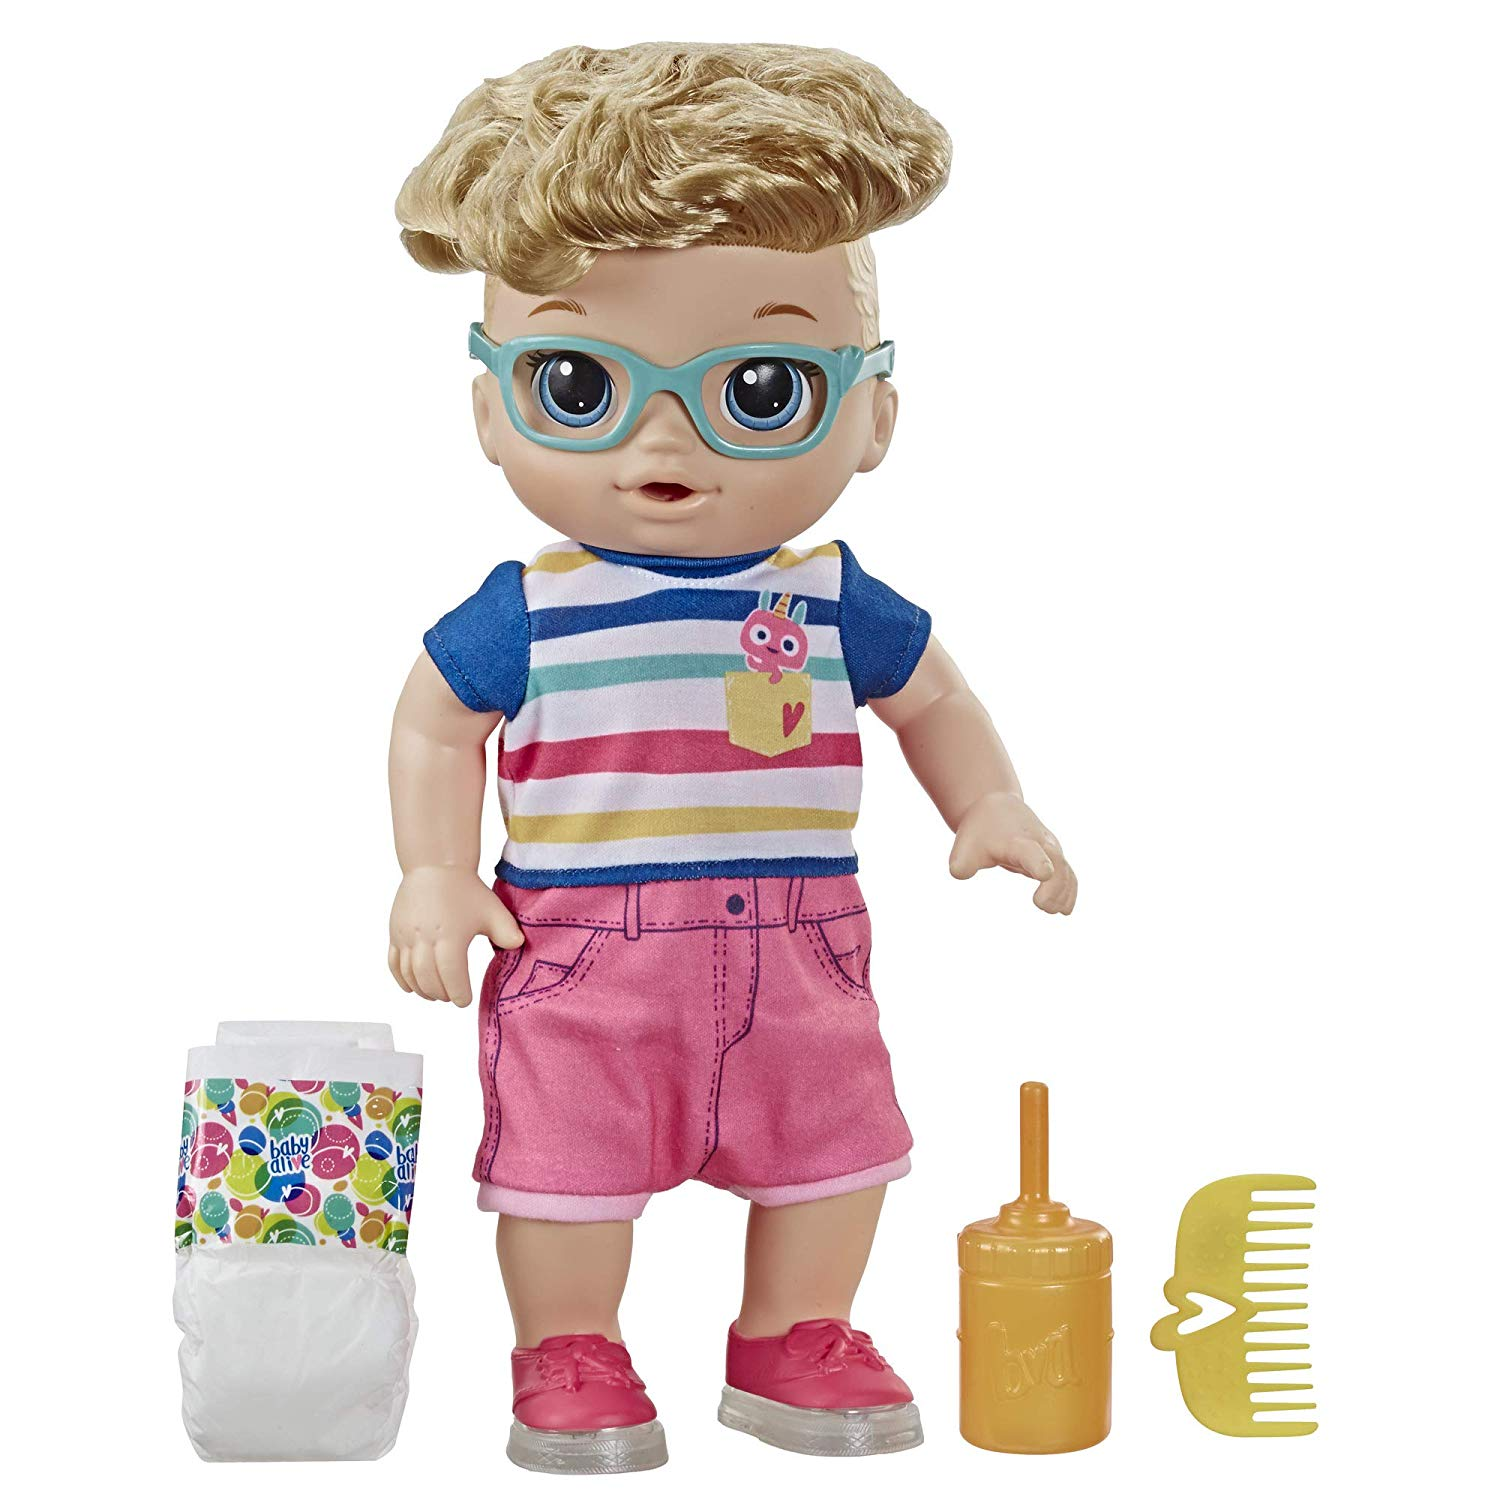 Baby Alive Step N Giggle Baby Blonde Hair Boy Doll With 25 Sounds And Phrases 630509819485 Ebay